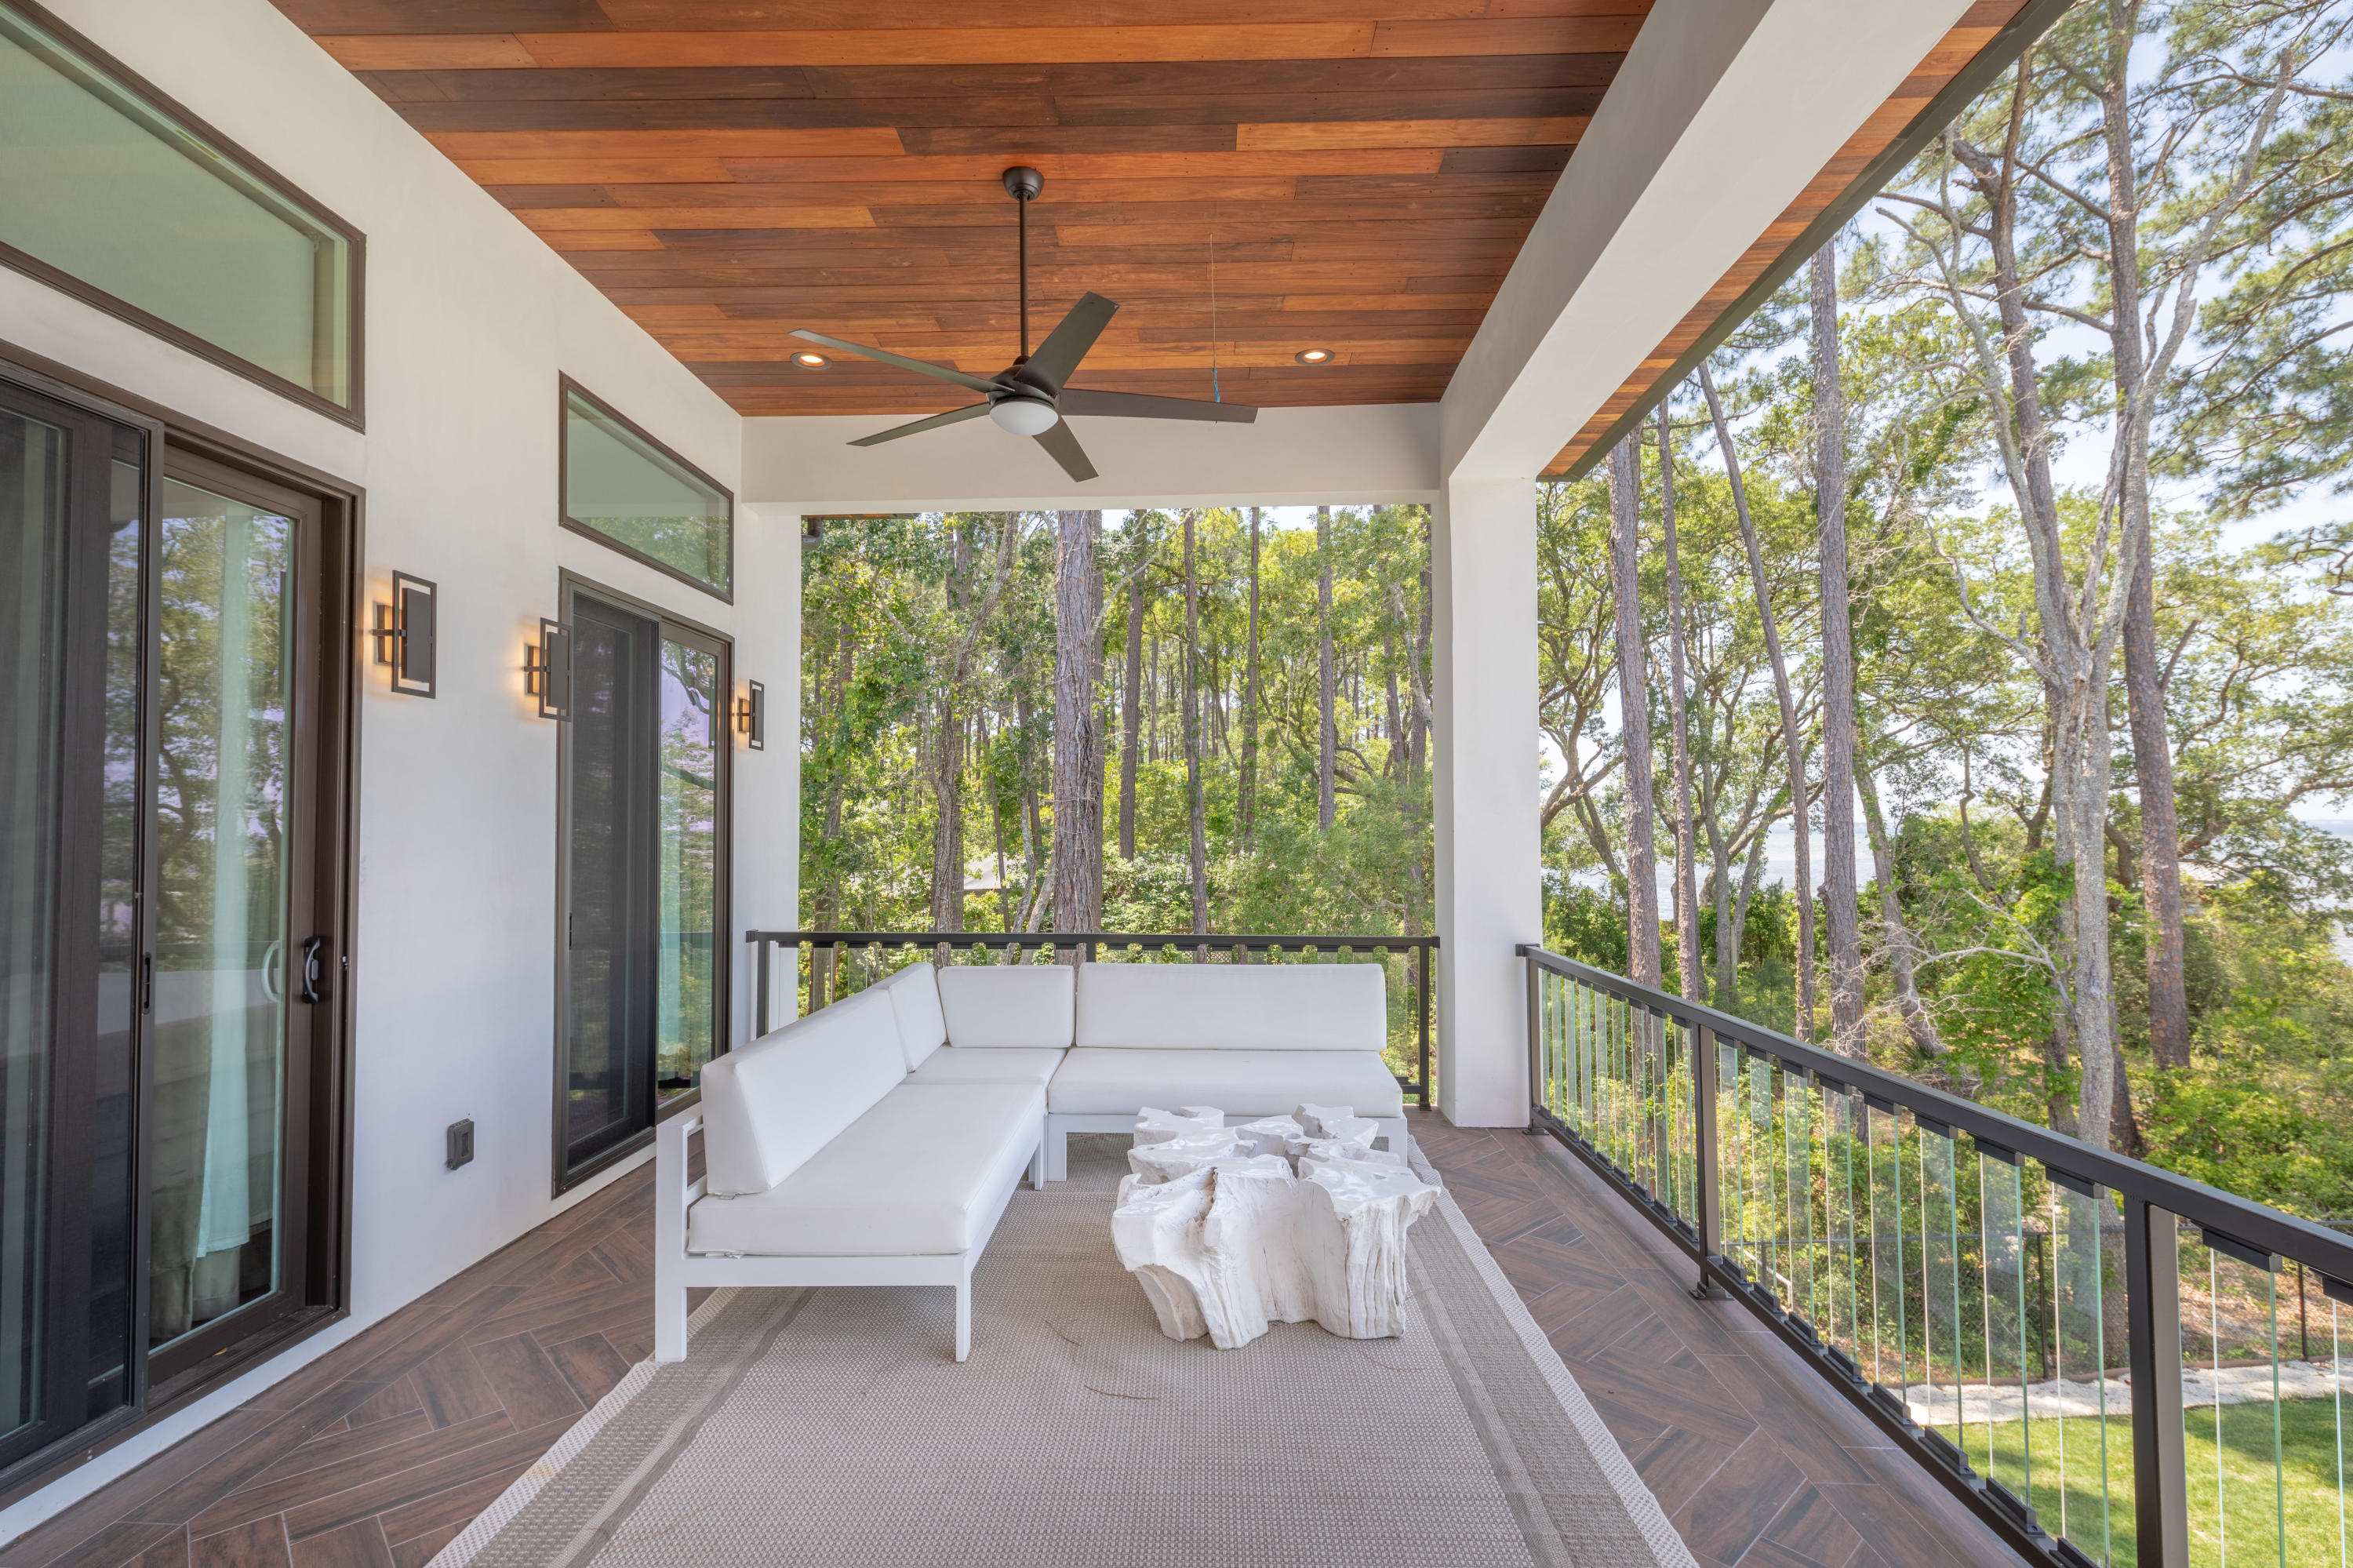 405 Driftwood Point,Santa Rosa Beach,Florida 32459,7 Bedrooms Bedrooms,5 BathroomsBathrooms,Detached single family,Driftwood Point,20131126143817002353000000